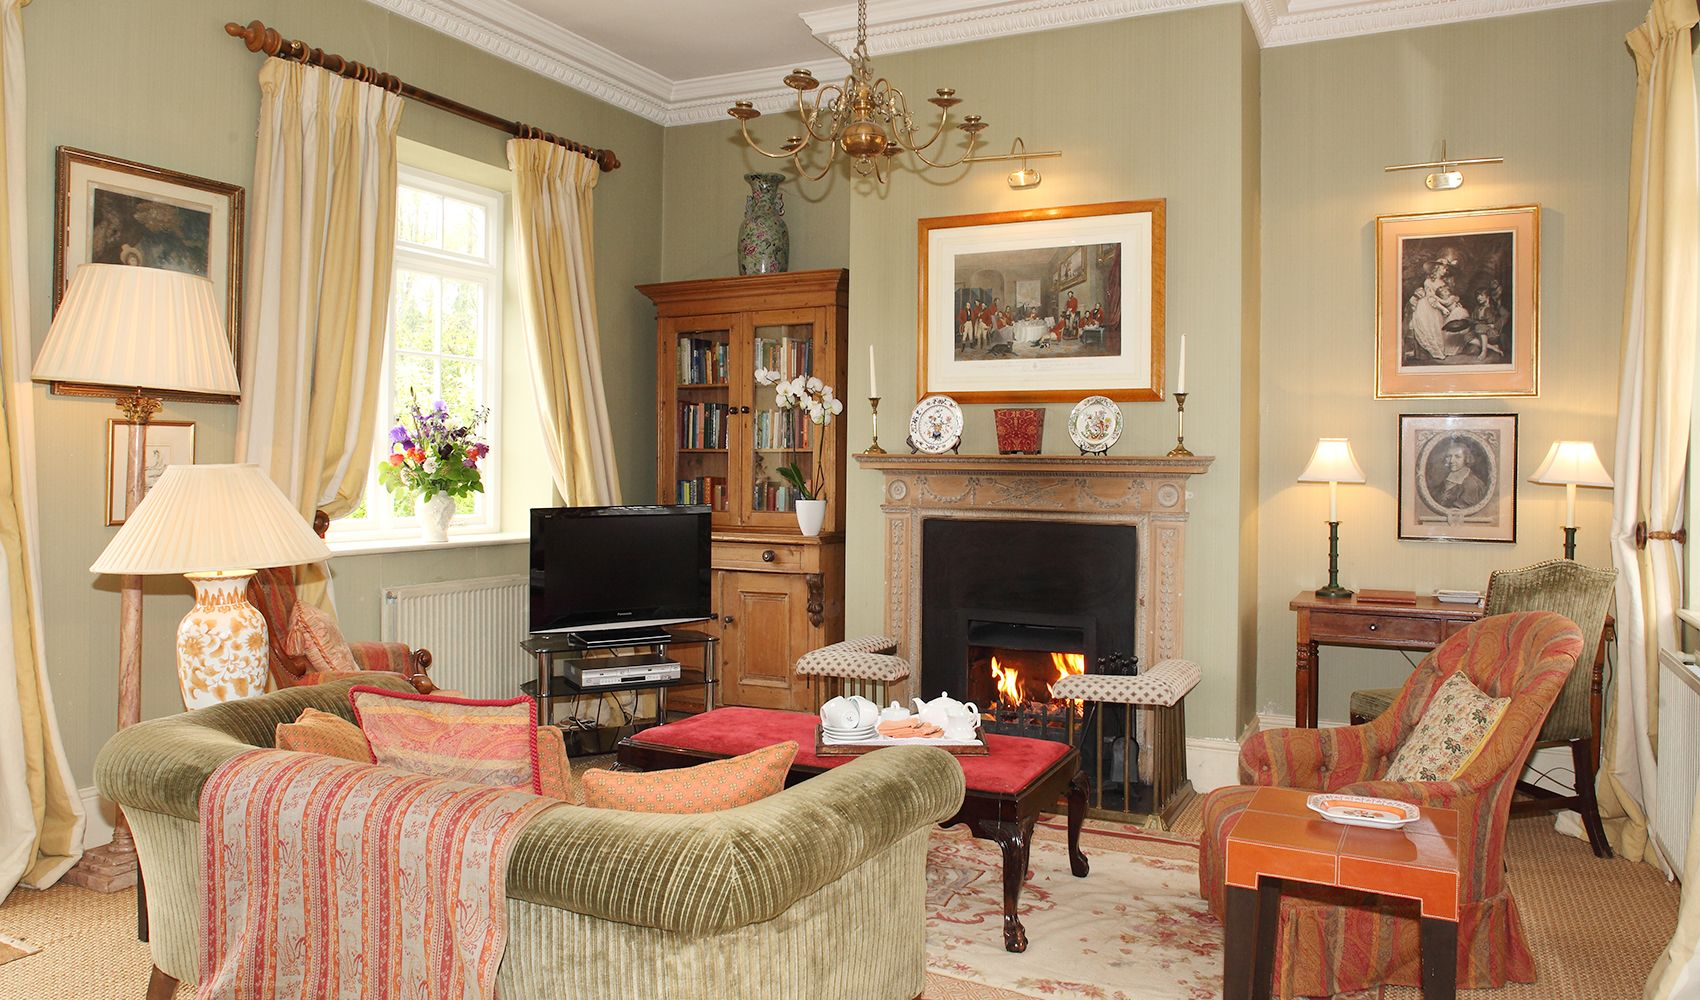 Ground floor: Drawing room in the open plan living area with an open fire